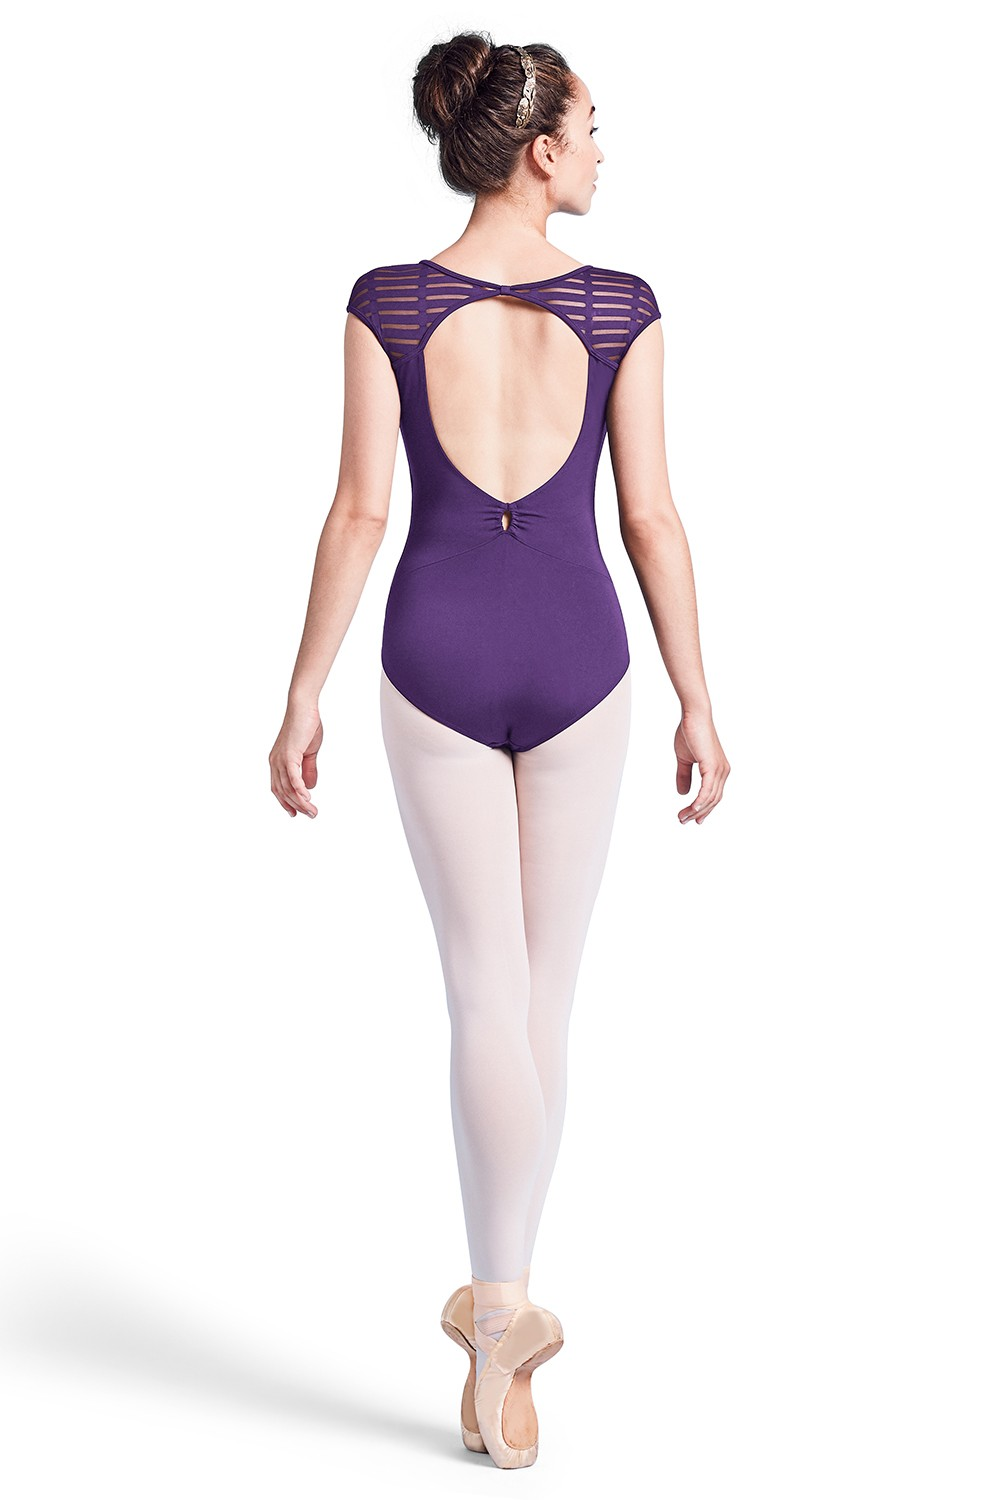 Keyhole Back Cap Sleeve Leotard - Tween Children's Dance Leotards